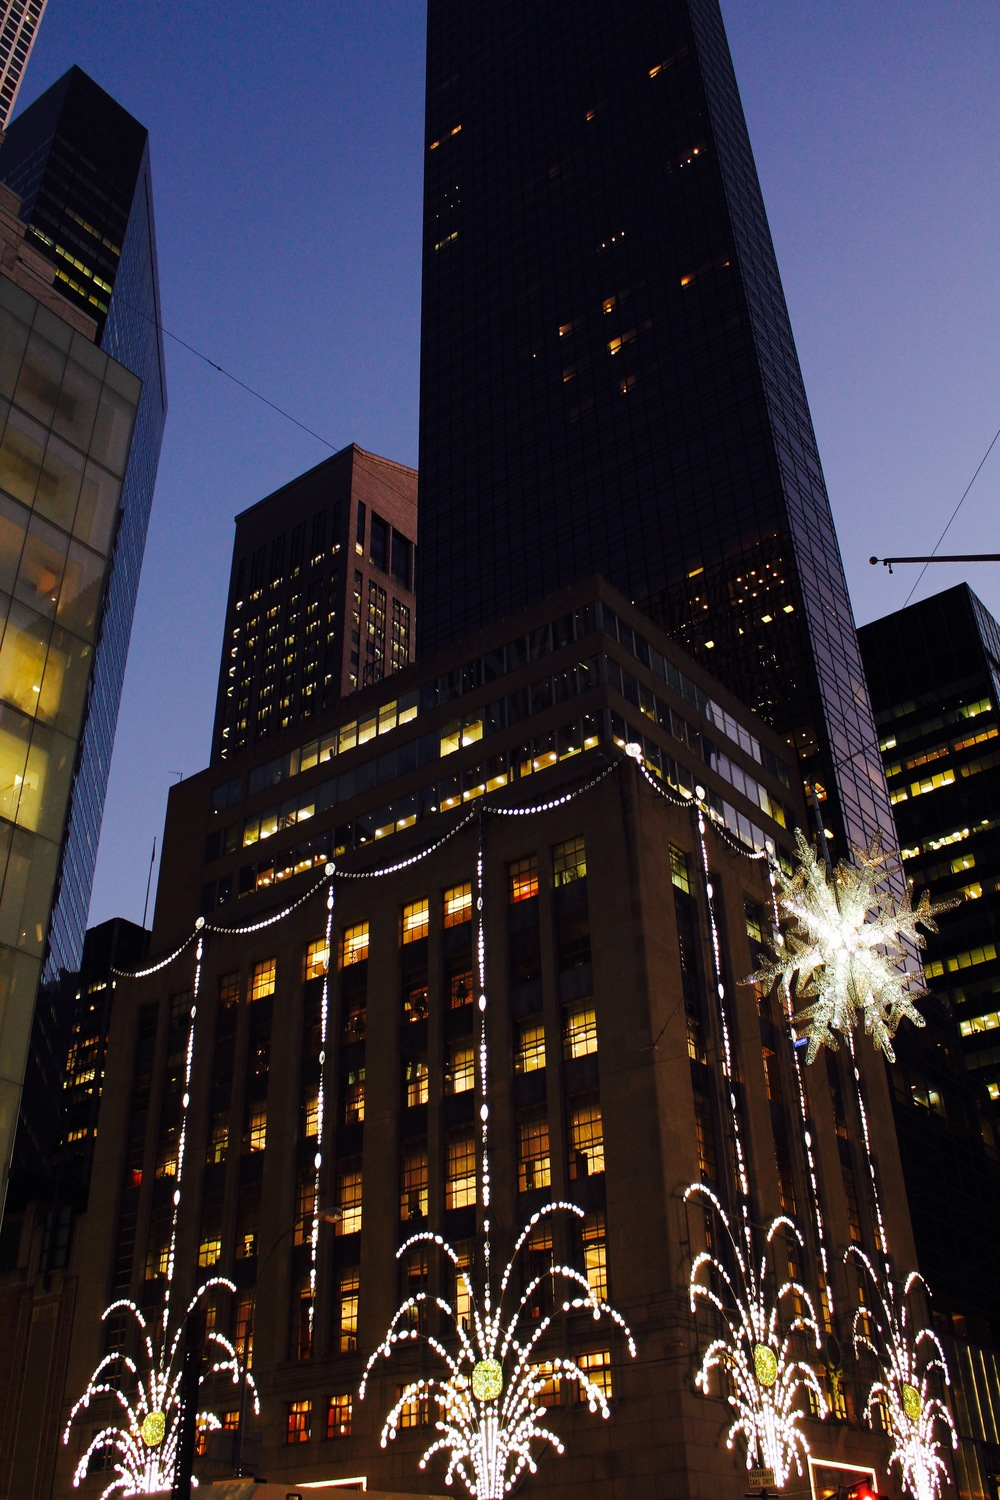 Fifth Avenue during the Holidays